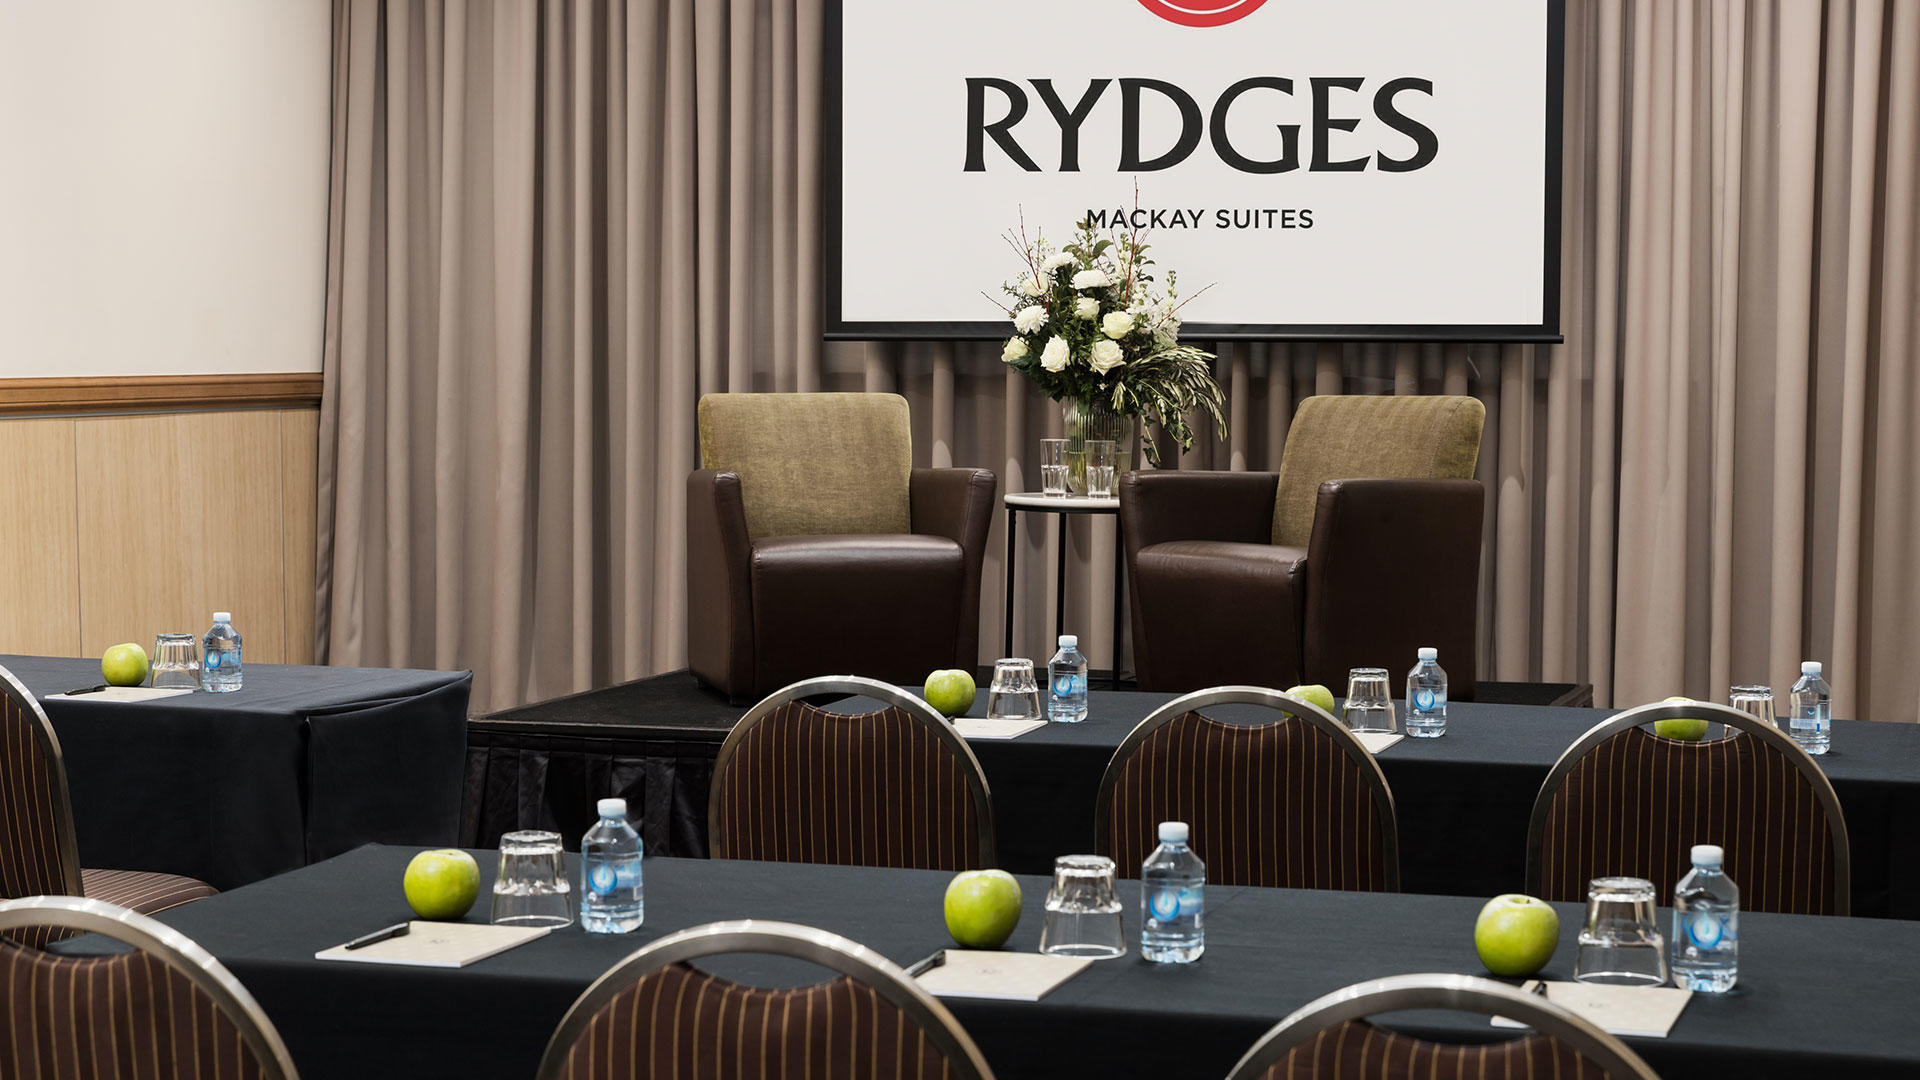 Rydges_Mackay_Suites_Conference_Hall2